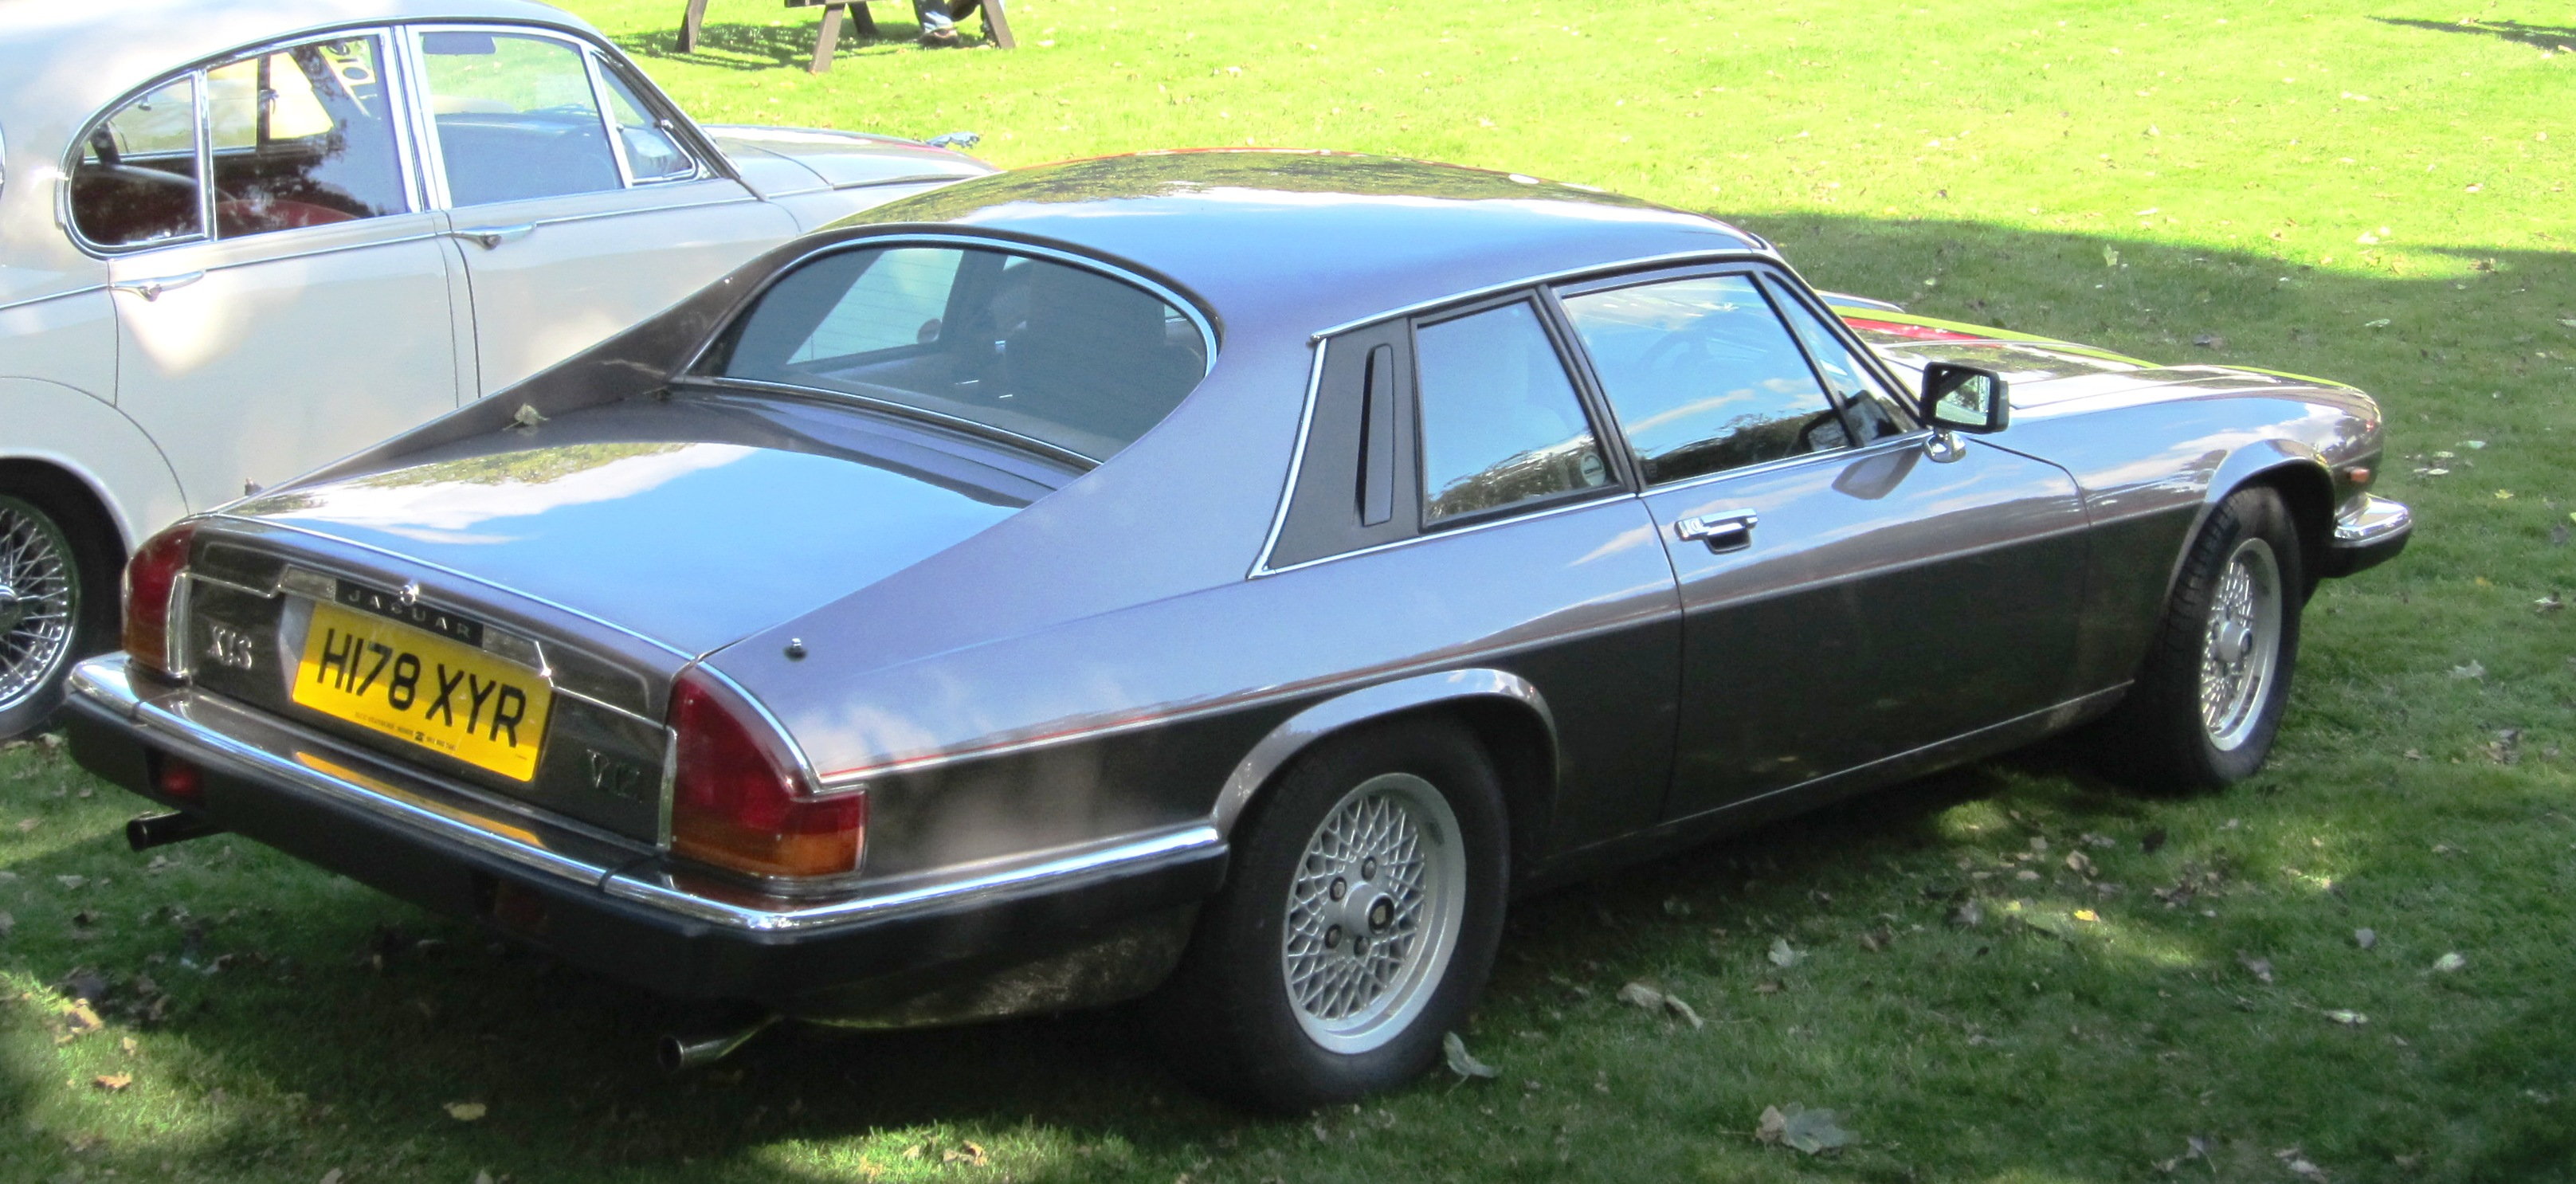 Jagyar_XJS_V12_5343cc_September_1990_rea